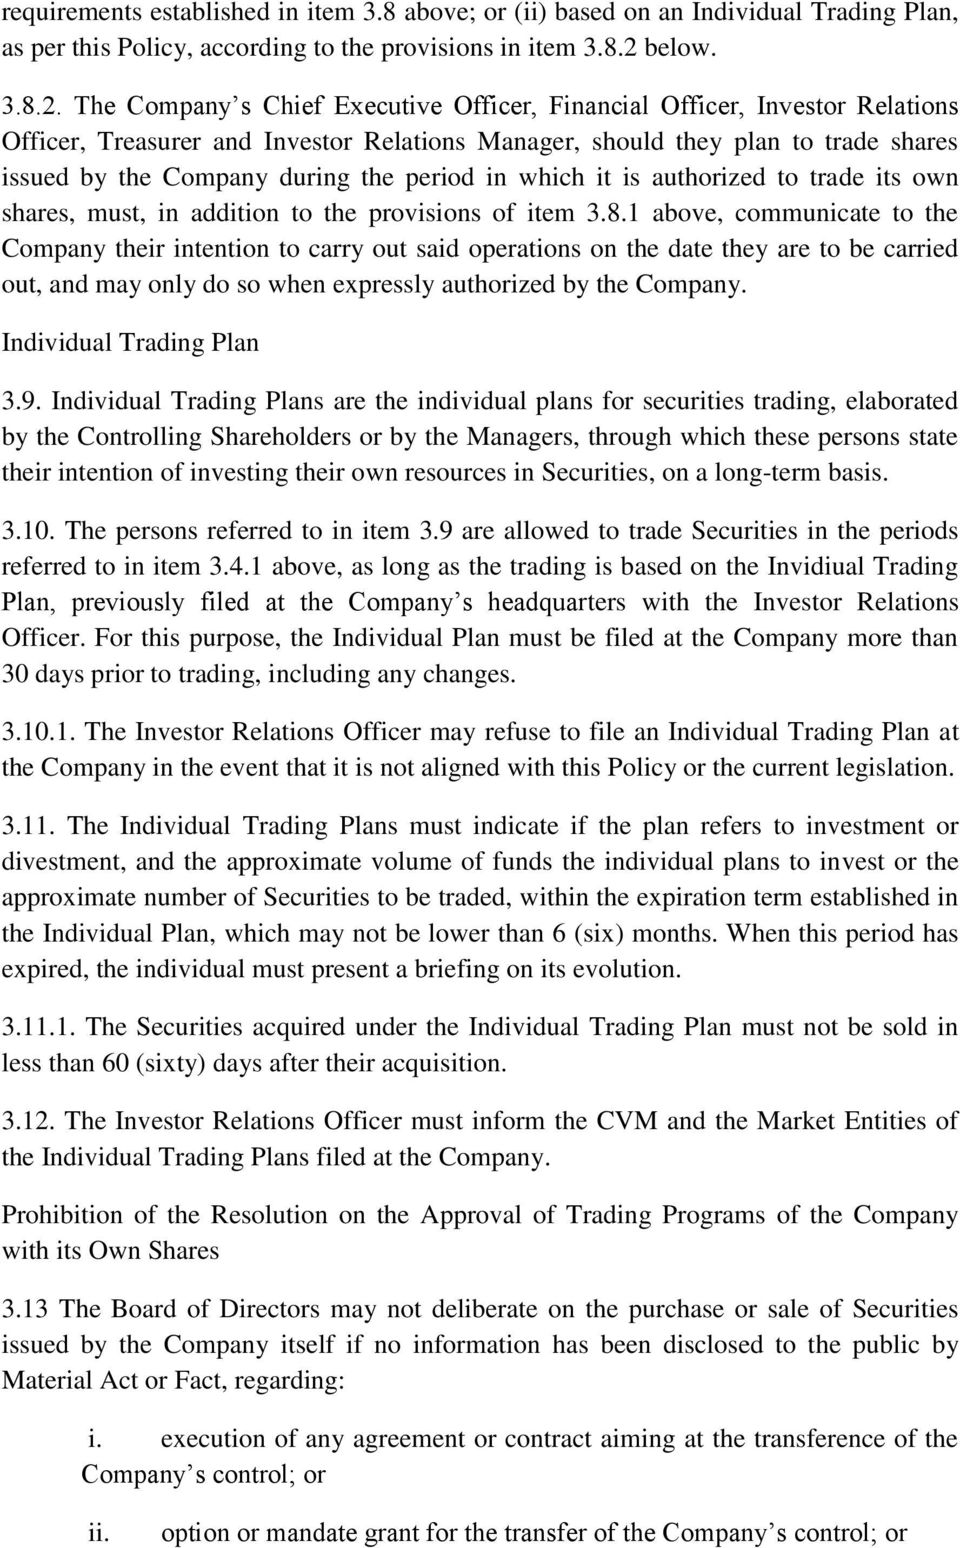 The Company s Chief Executive Officer, Financial Officer, Investor Relations Officer, Treasurer and Investor Relations Manager, should they plan to trade shares issued by the Company during the